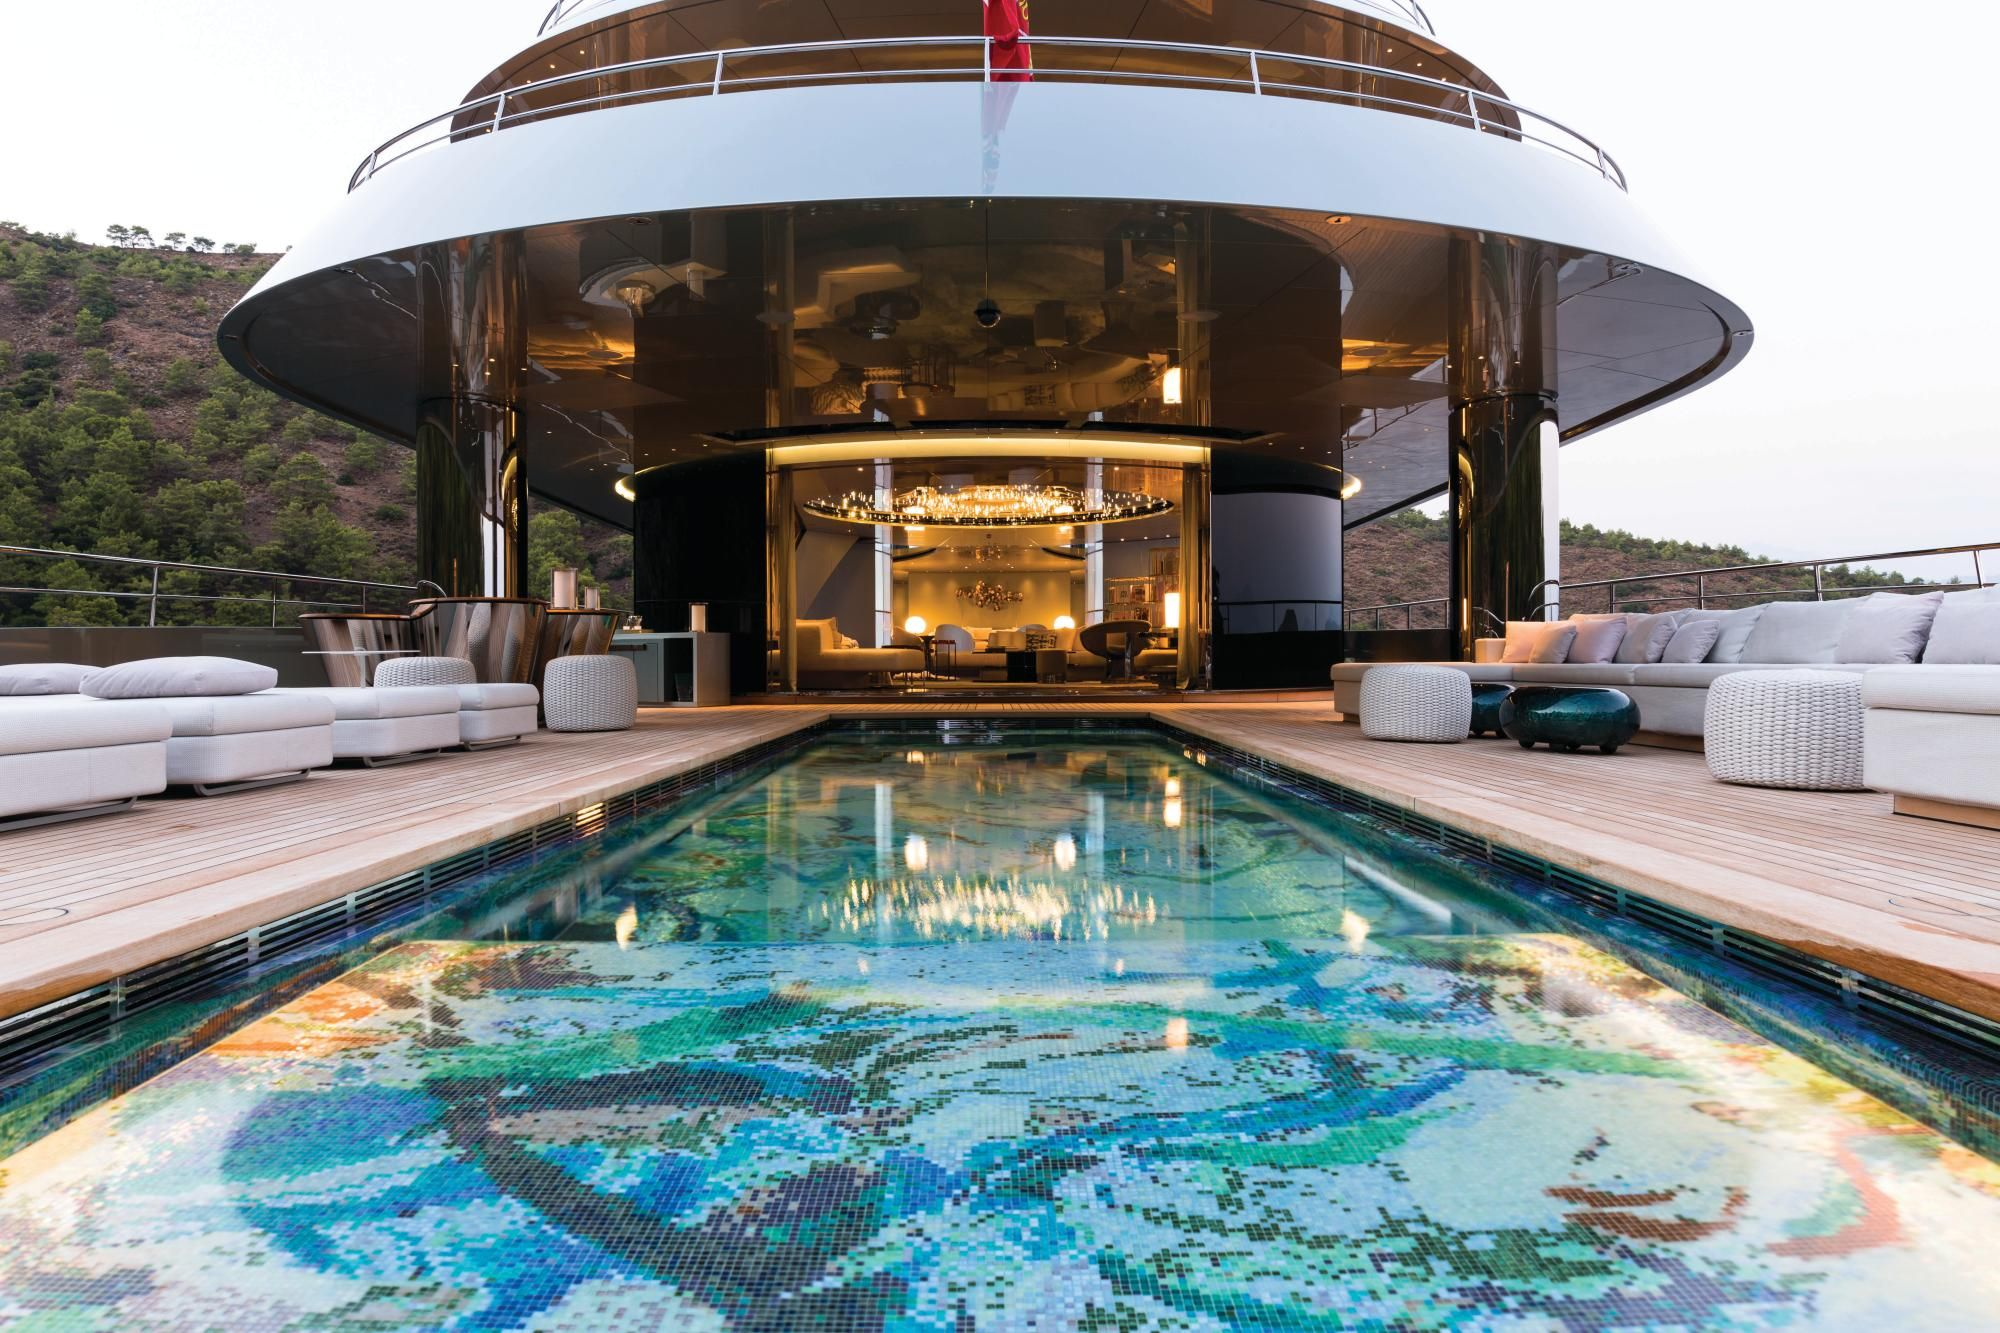 The 30 Foot Long Main Deck Swimming Pool Is Custom Tiled In A